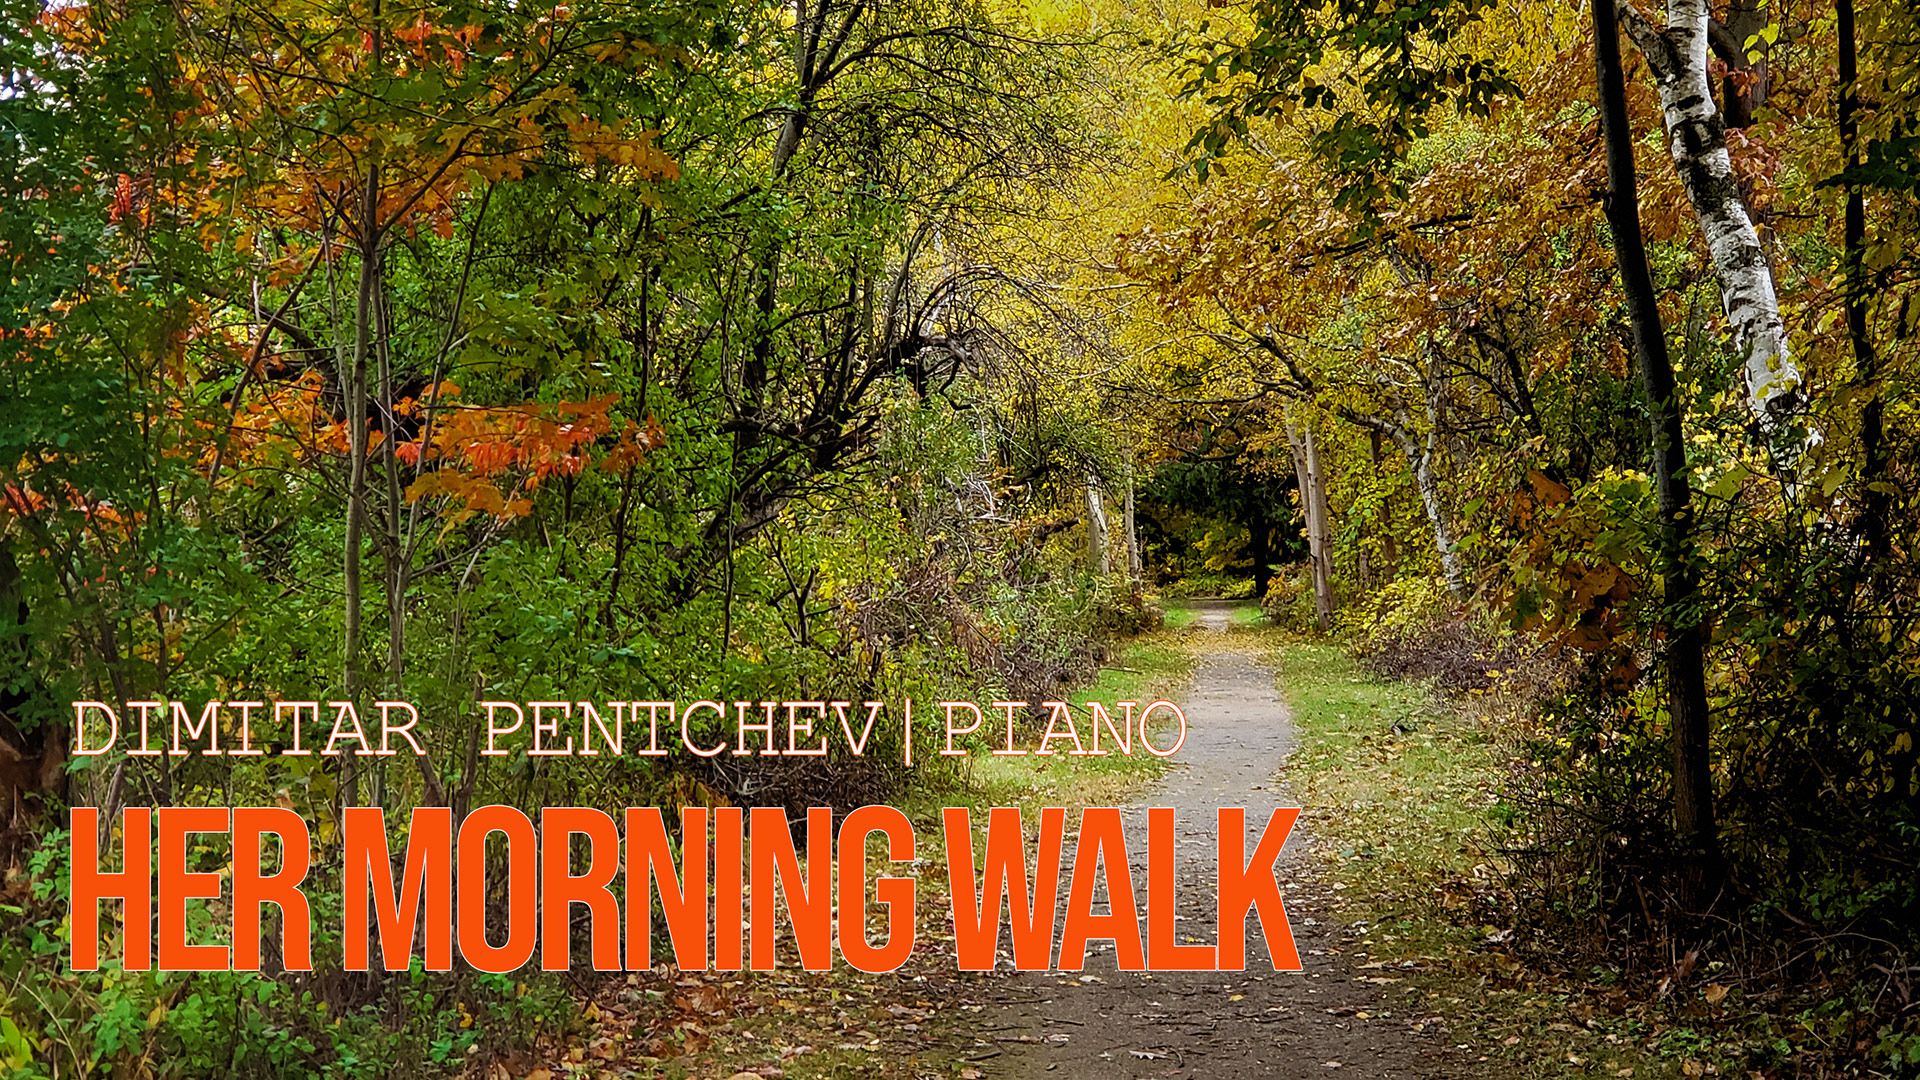 World Premiere: Her Morning Walk